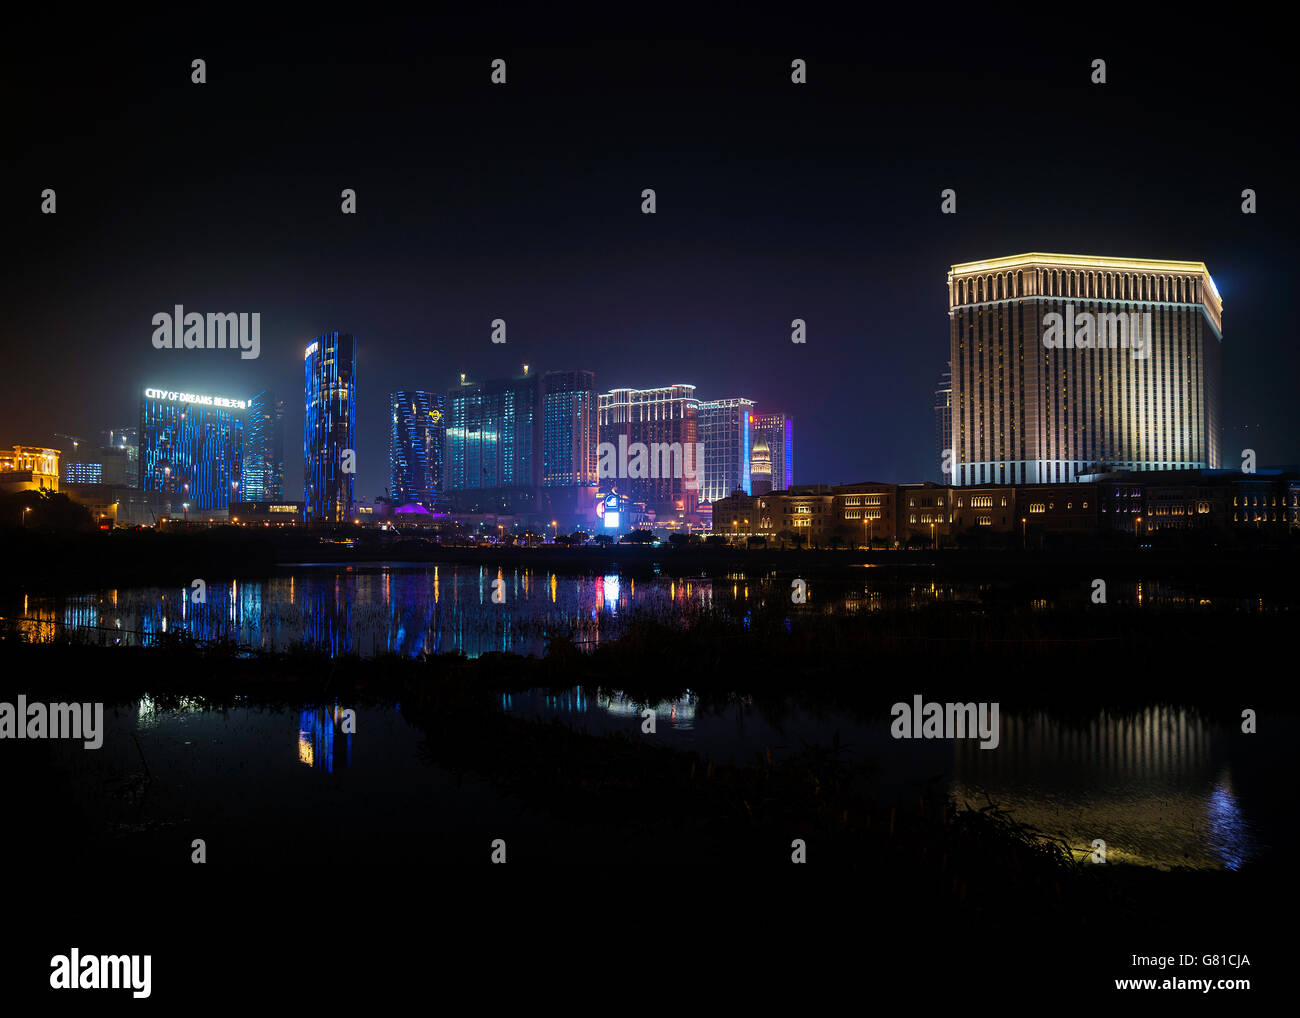 casino hotel resorts neon on cotai strip macao macau china at night - Stock Image